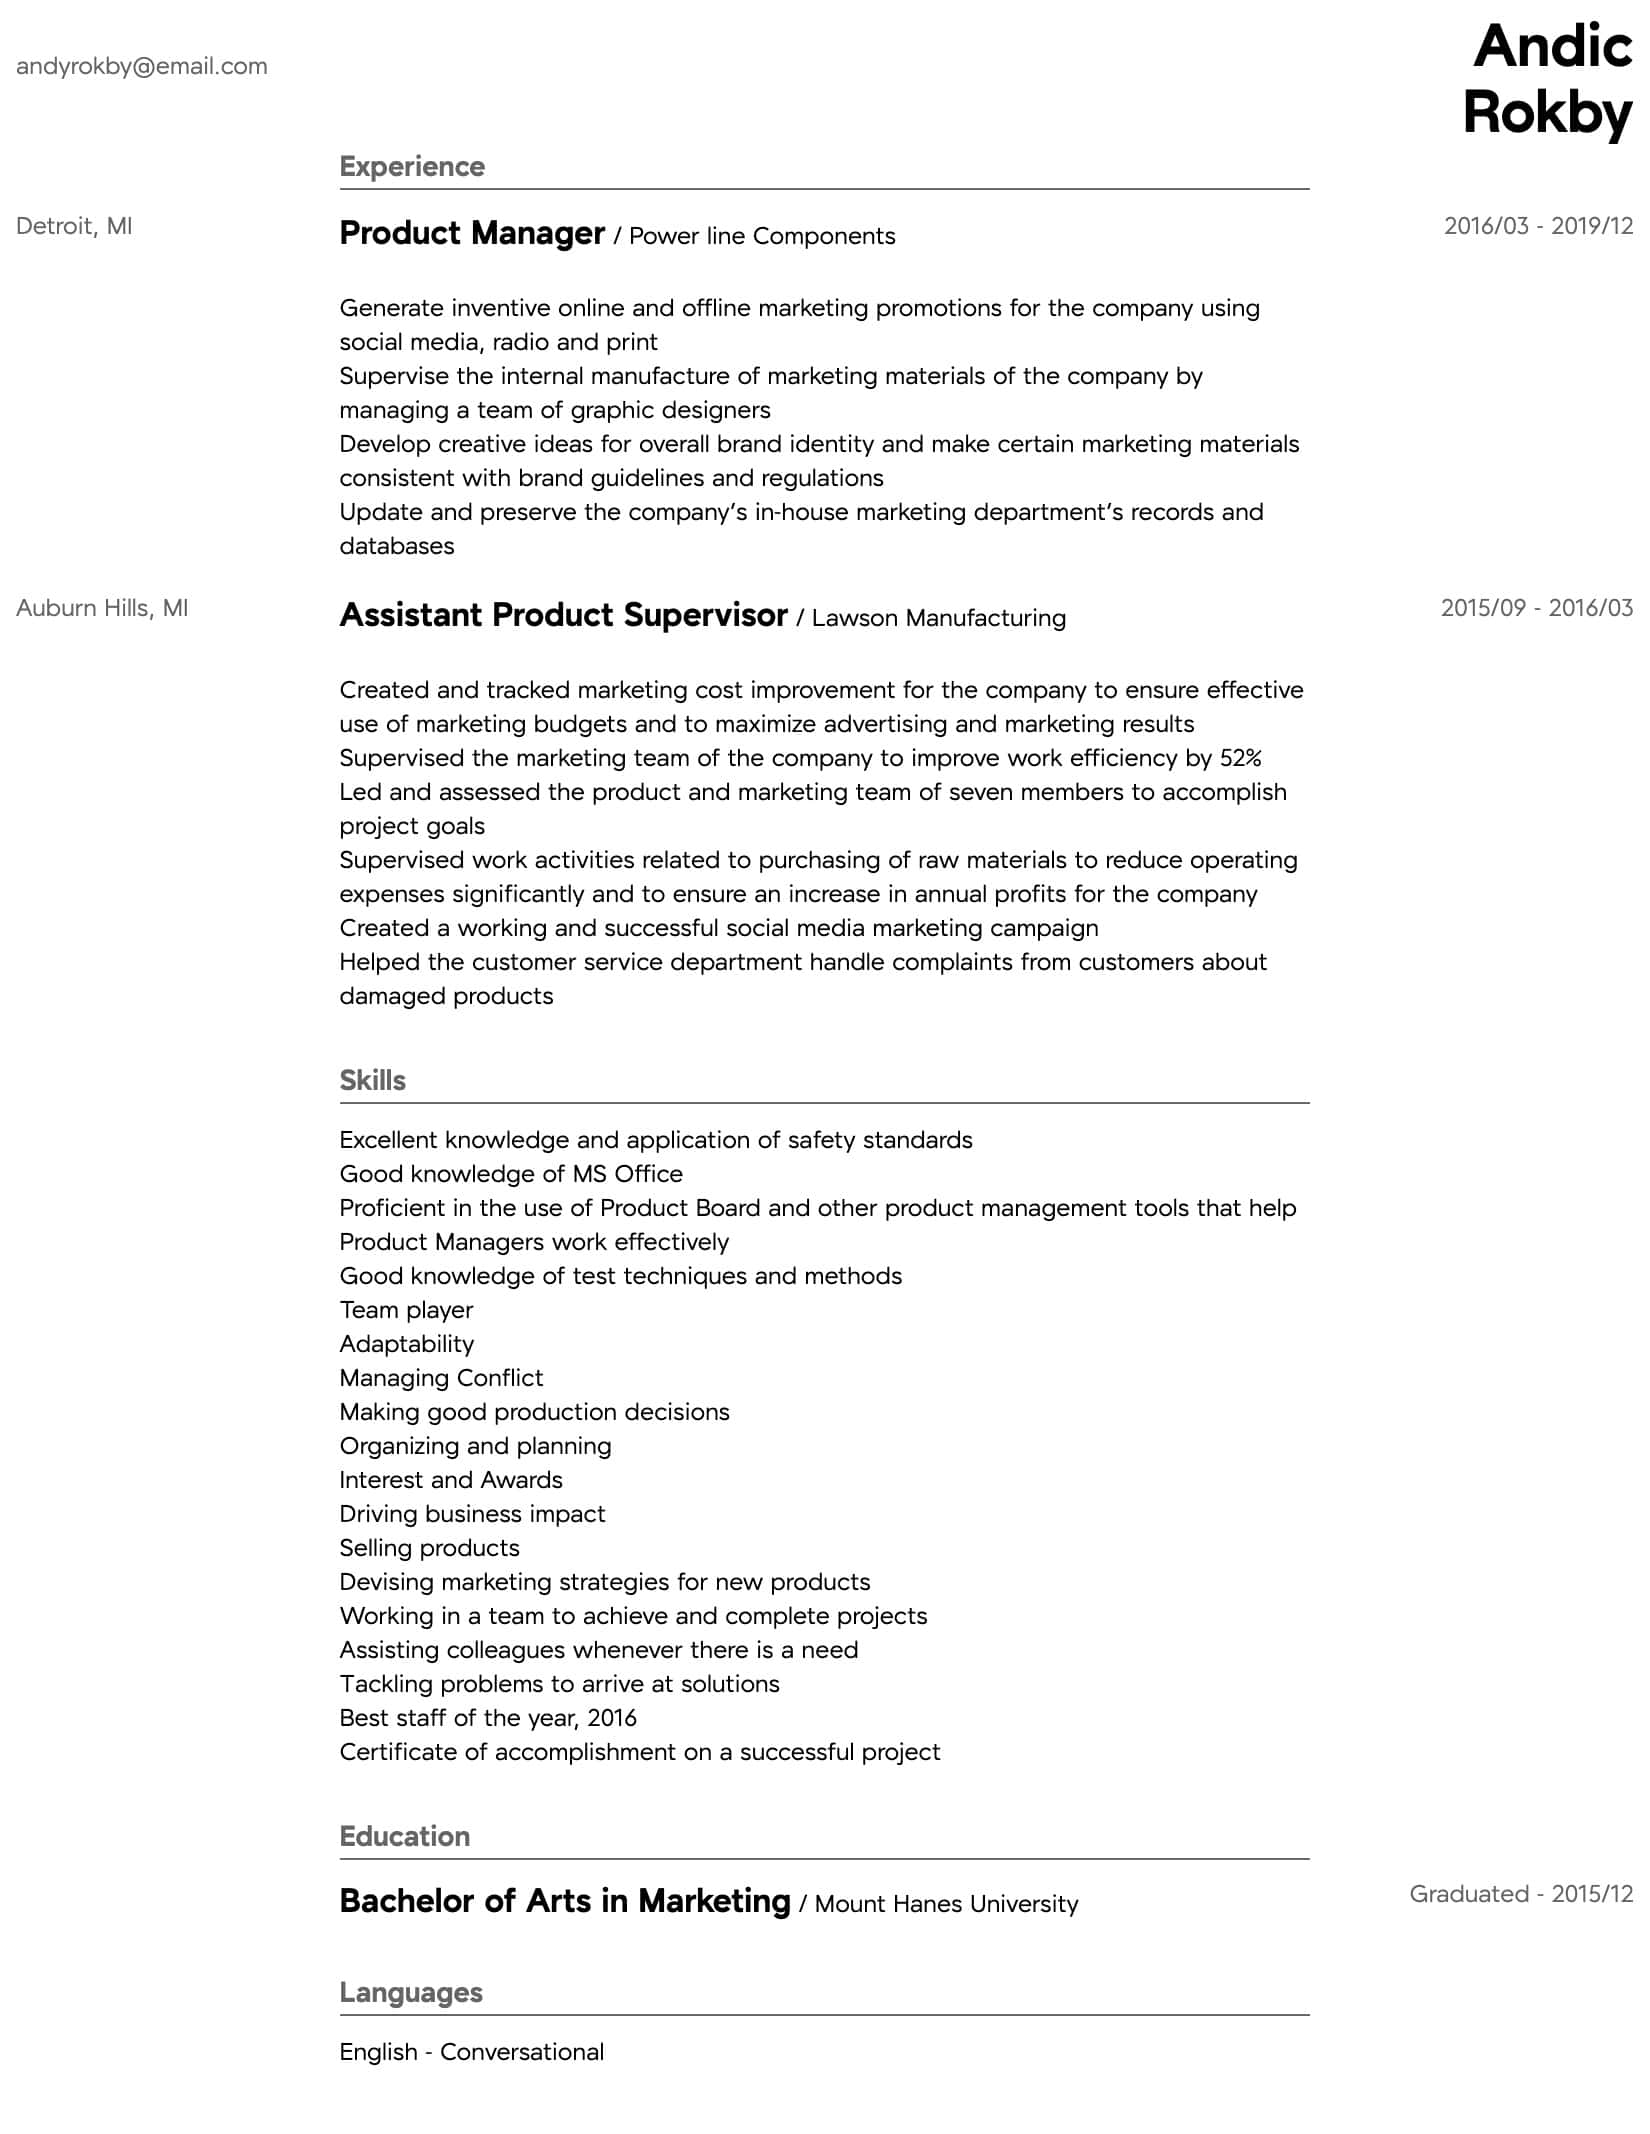 product manager resume samples all experience levels examples intermediate technician Resume Product Manager Resume Examples